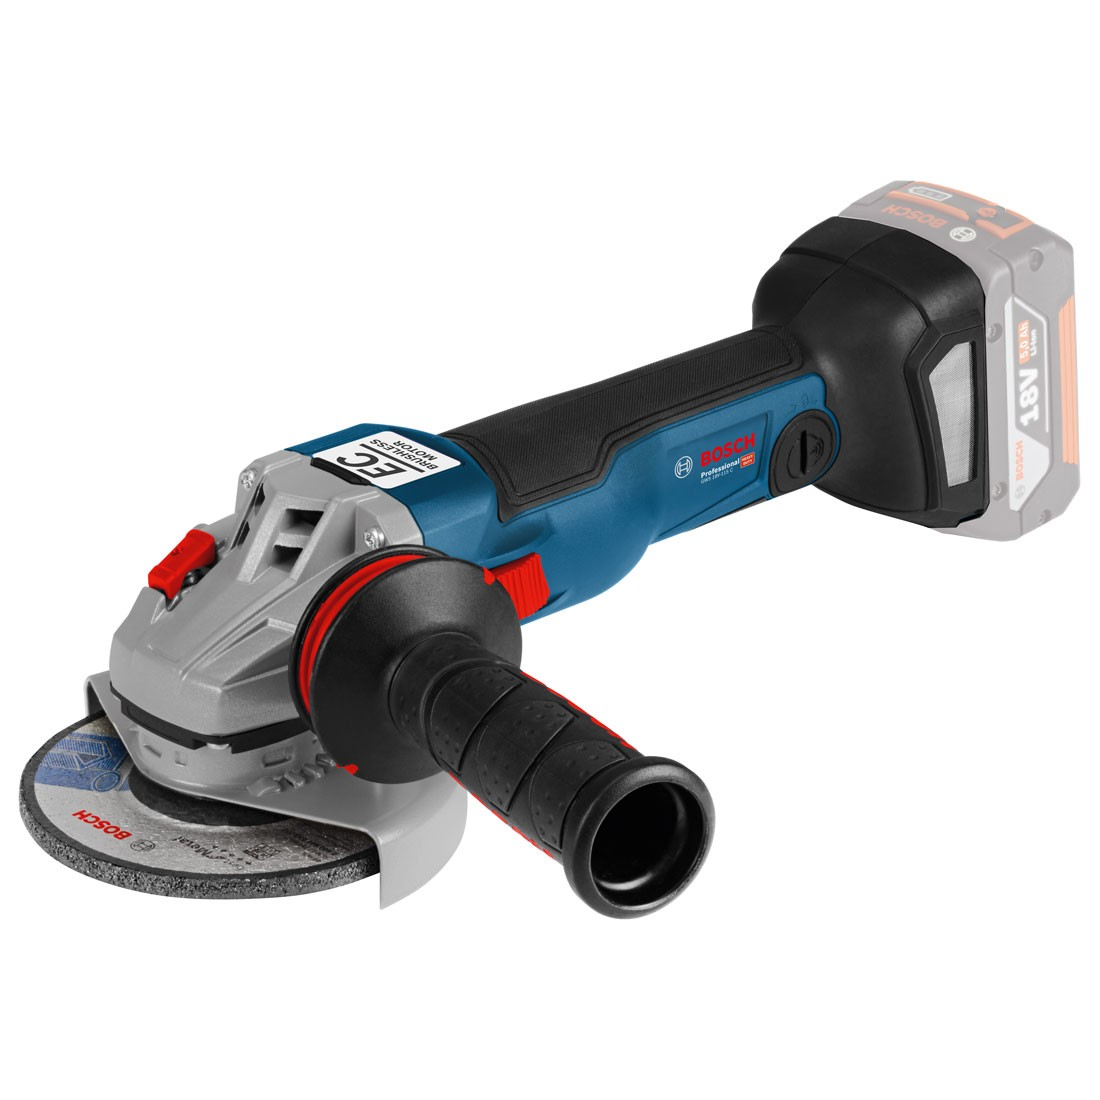 """Bosch GWS 18V-115 C Brushless Angle Grinder Body Only in Carton 115mm / 4.5"""""""